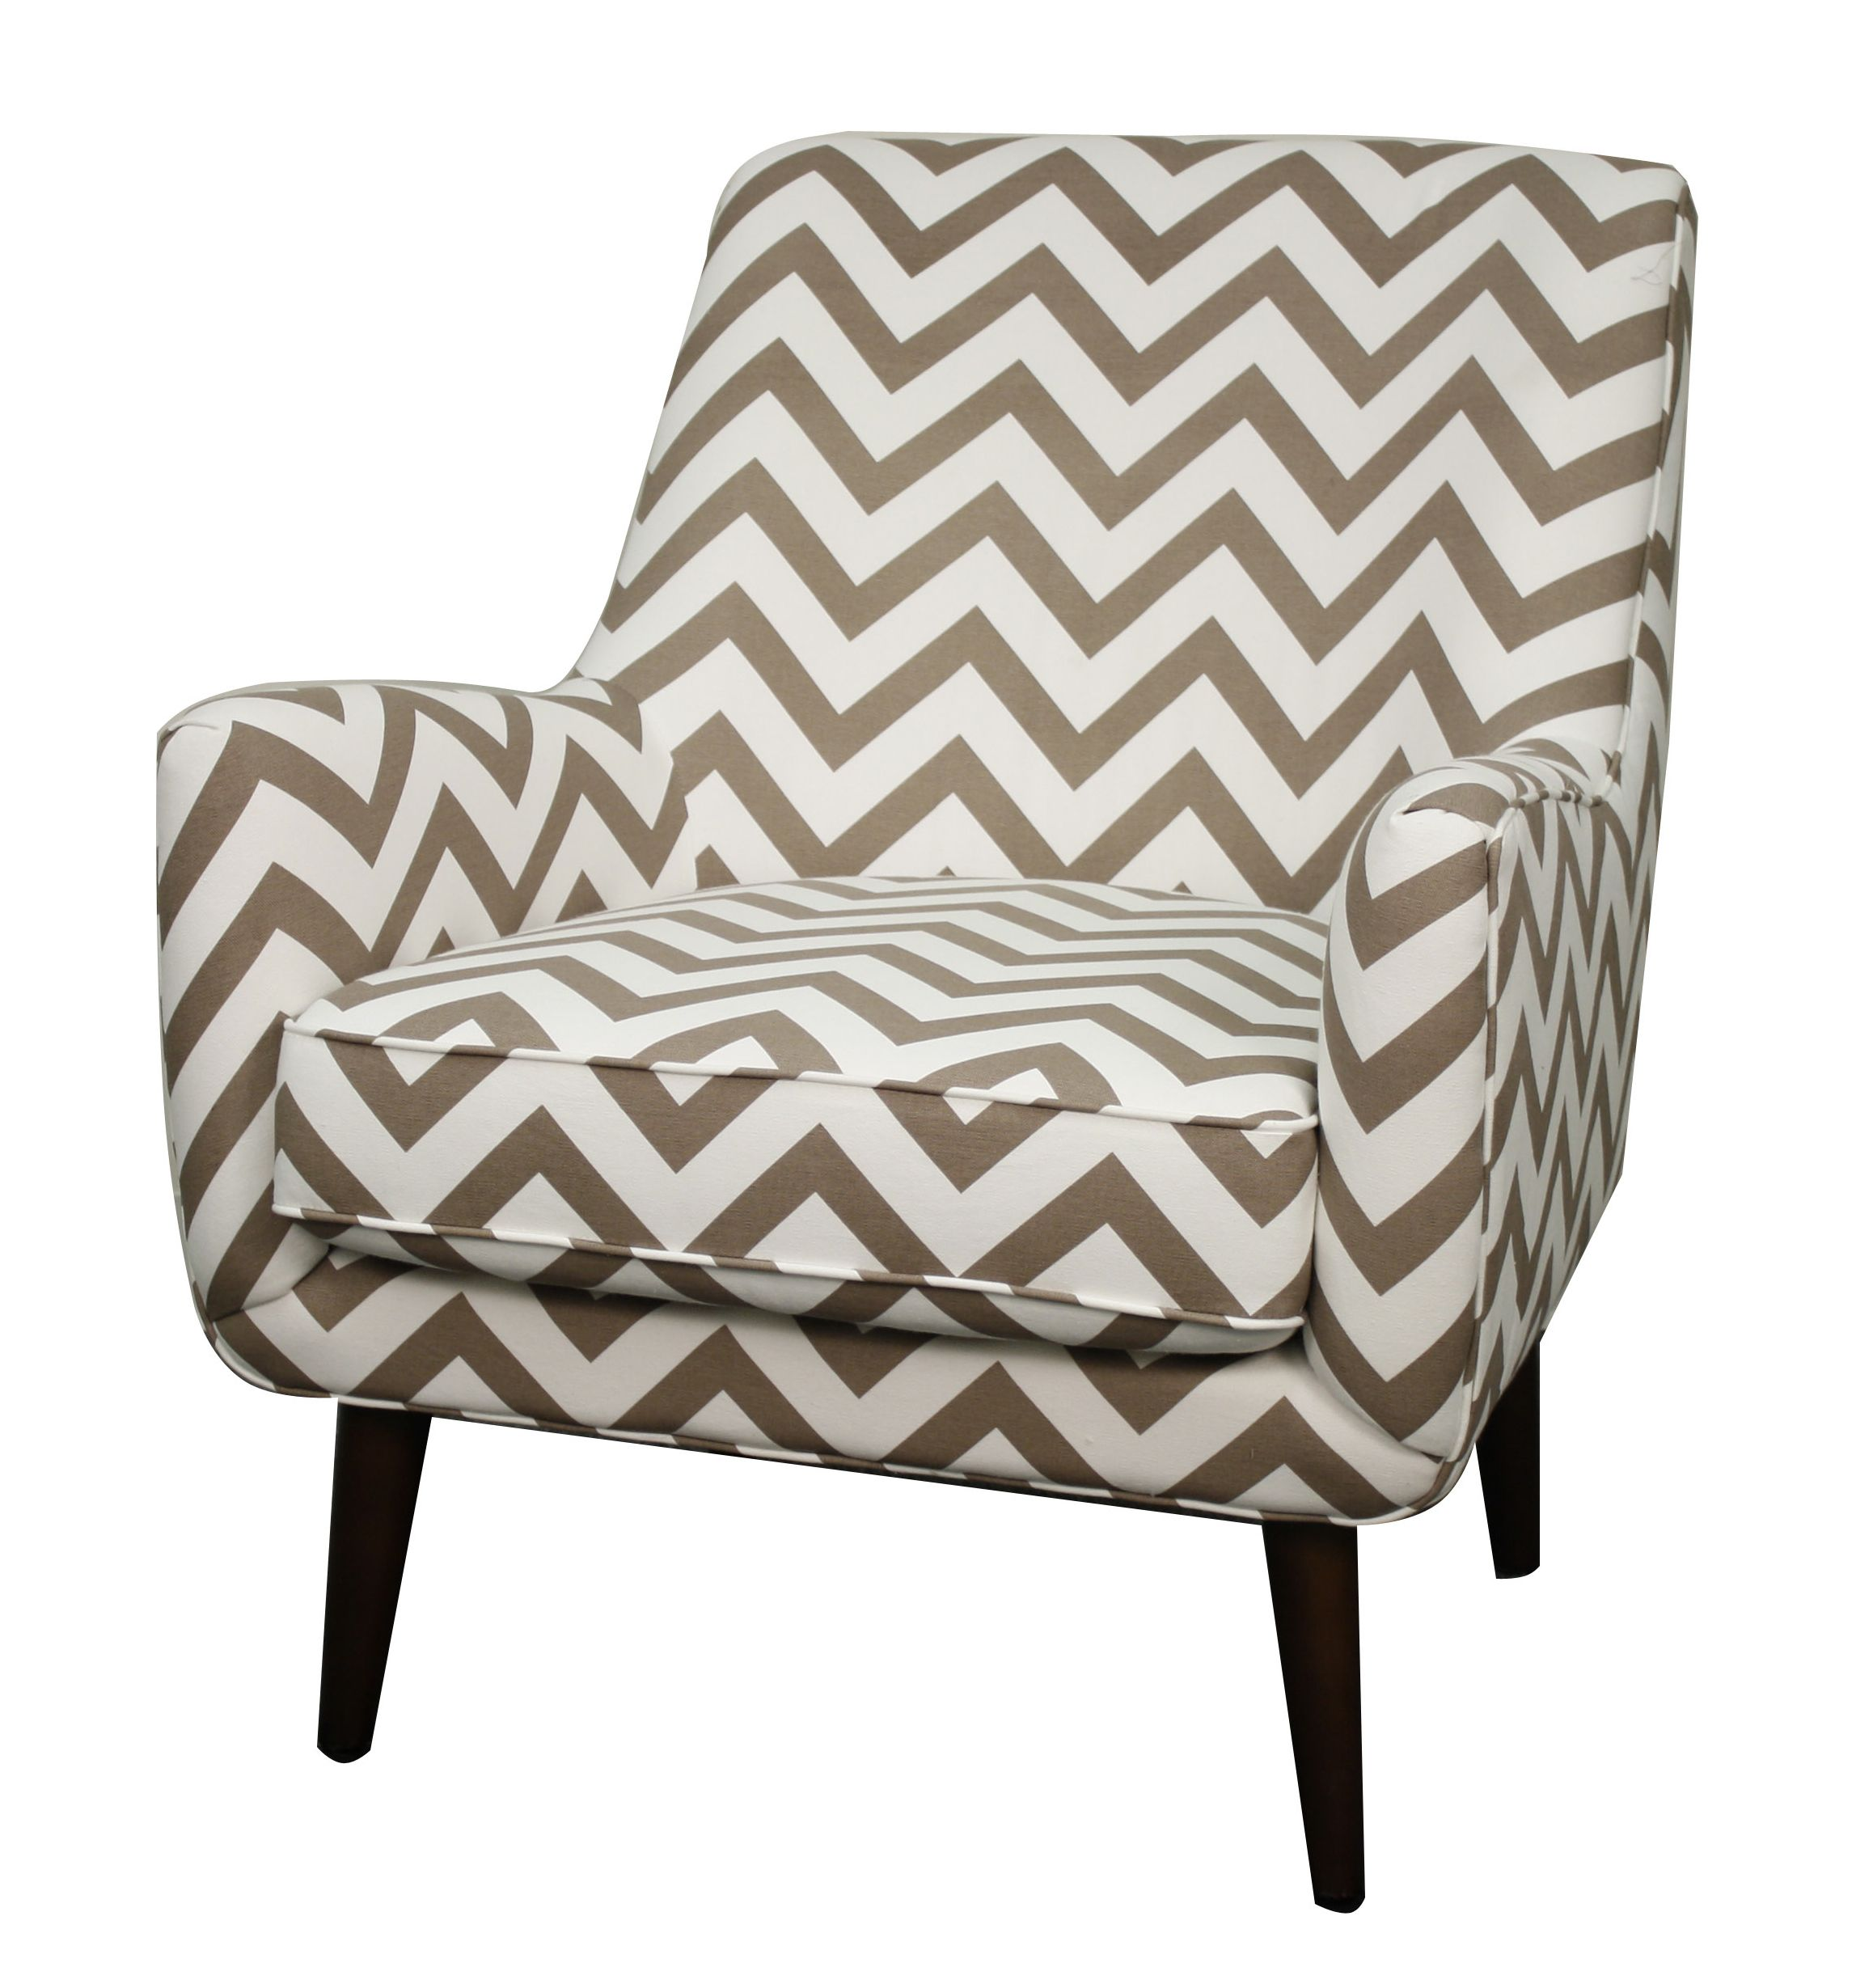 Zoe Fabric Arm Chair in Chevron Ecru Pattern. Constructed in Solid ...